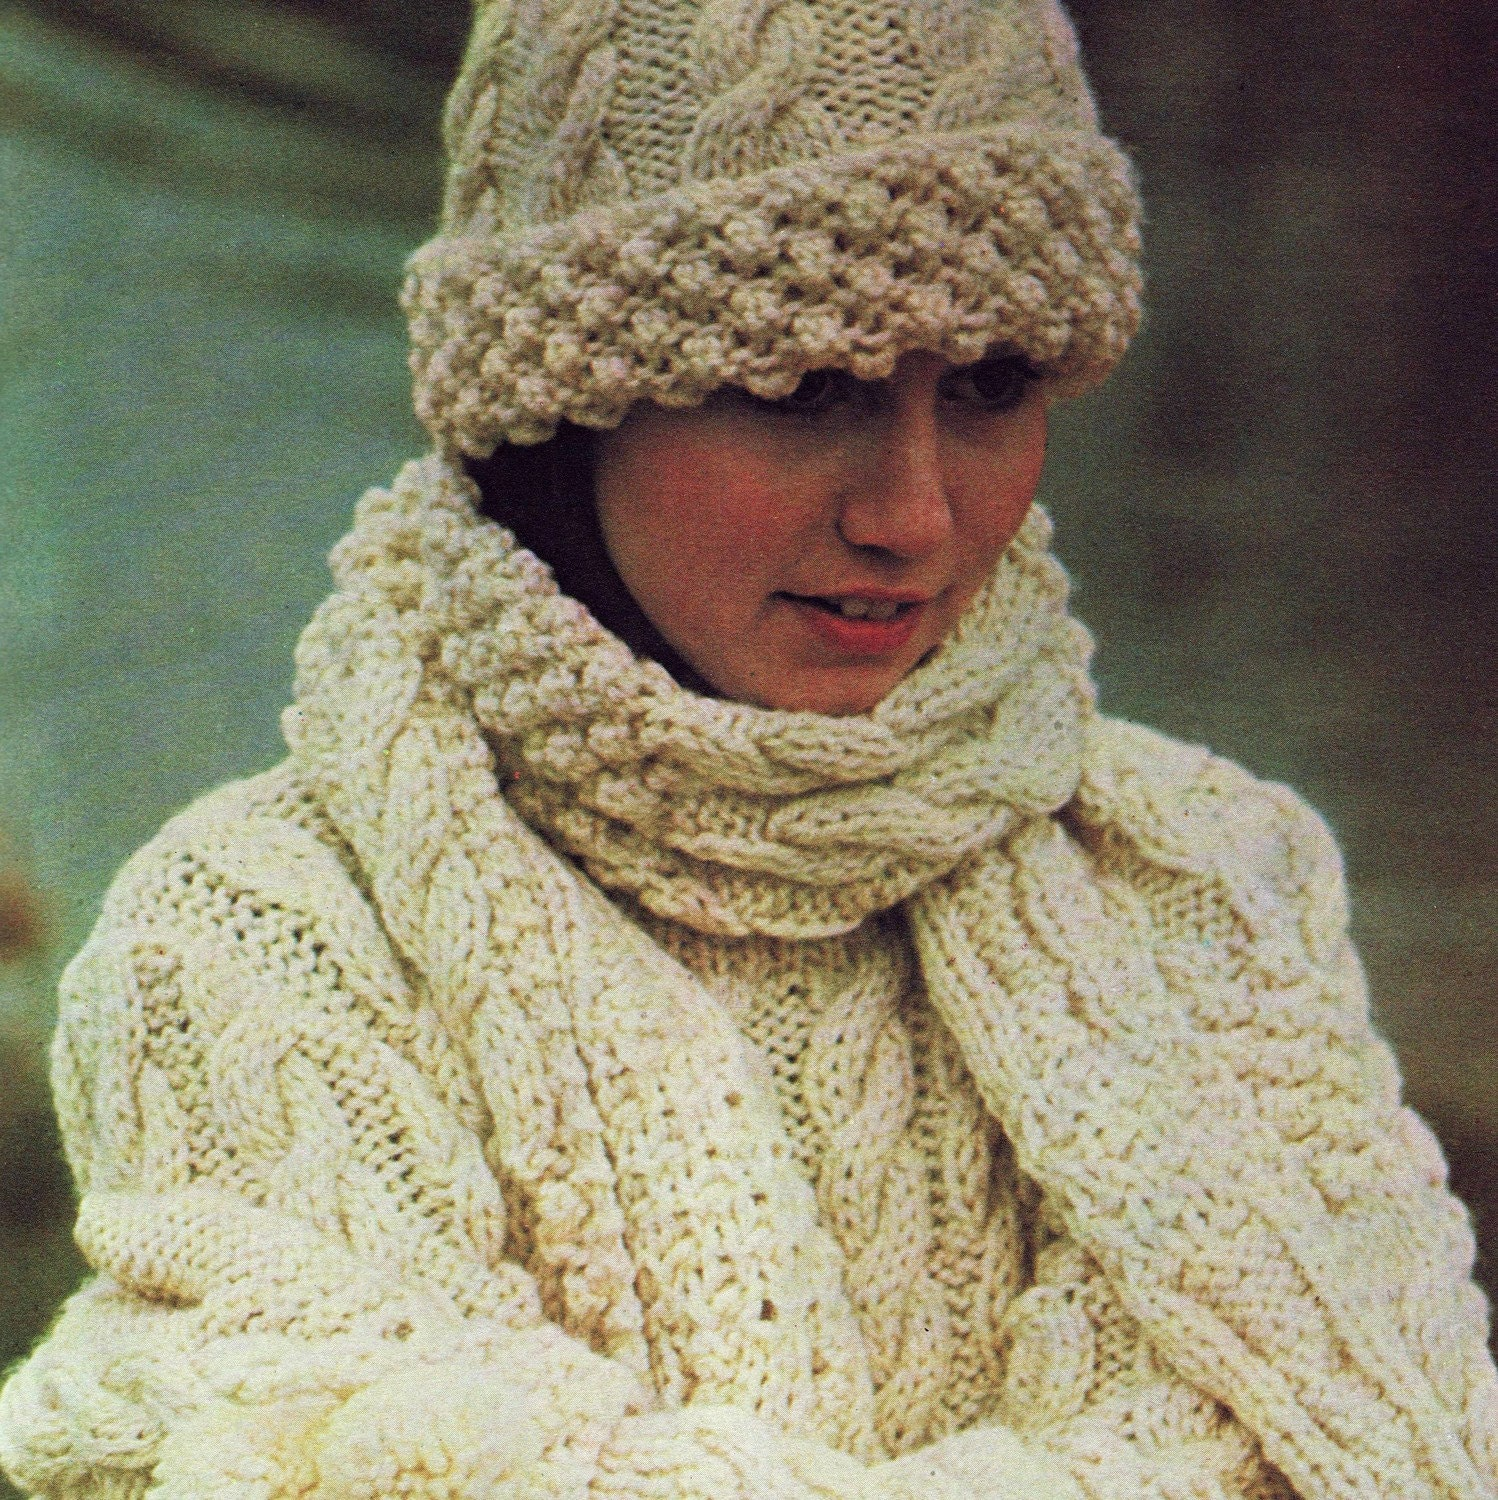 Knitting Pattern For Baby Hat And Scarf : Vintage Knitting Pattern PDF Aran Sweater Hat Scarf And Gloves Cable